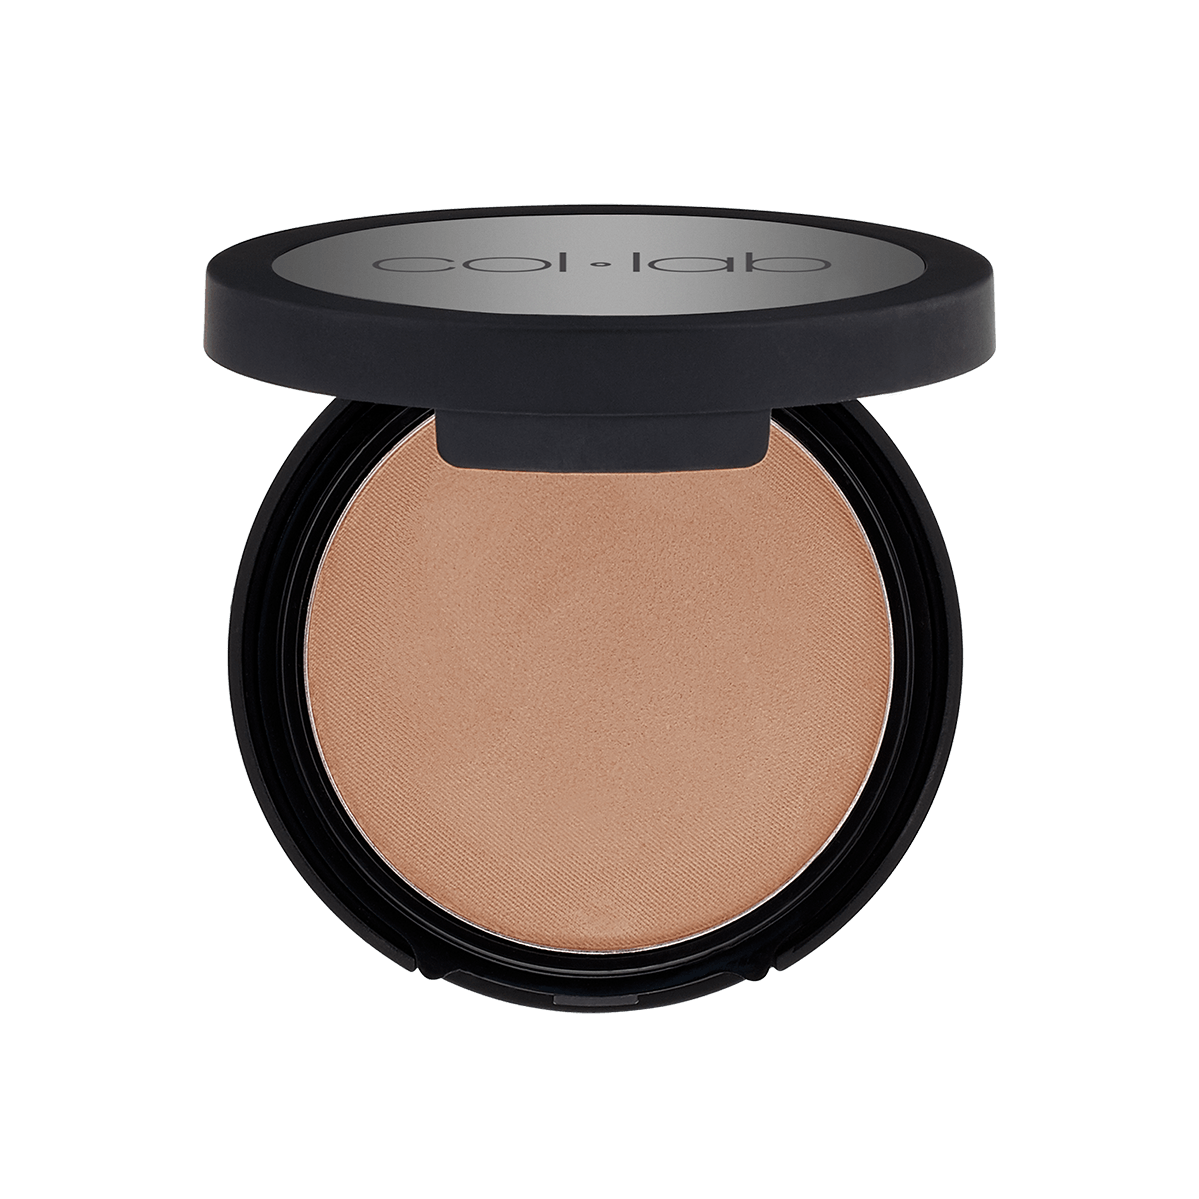 collab-kill-the-shine-pressed-powder-carameltawny-open1.png